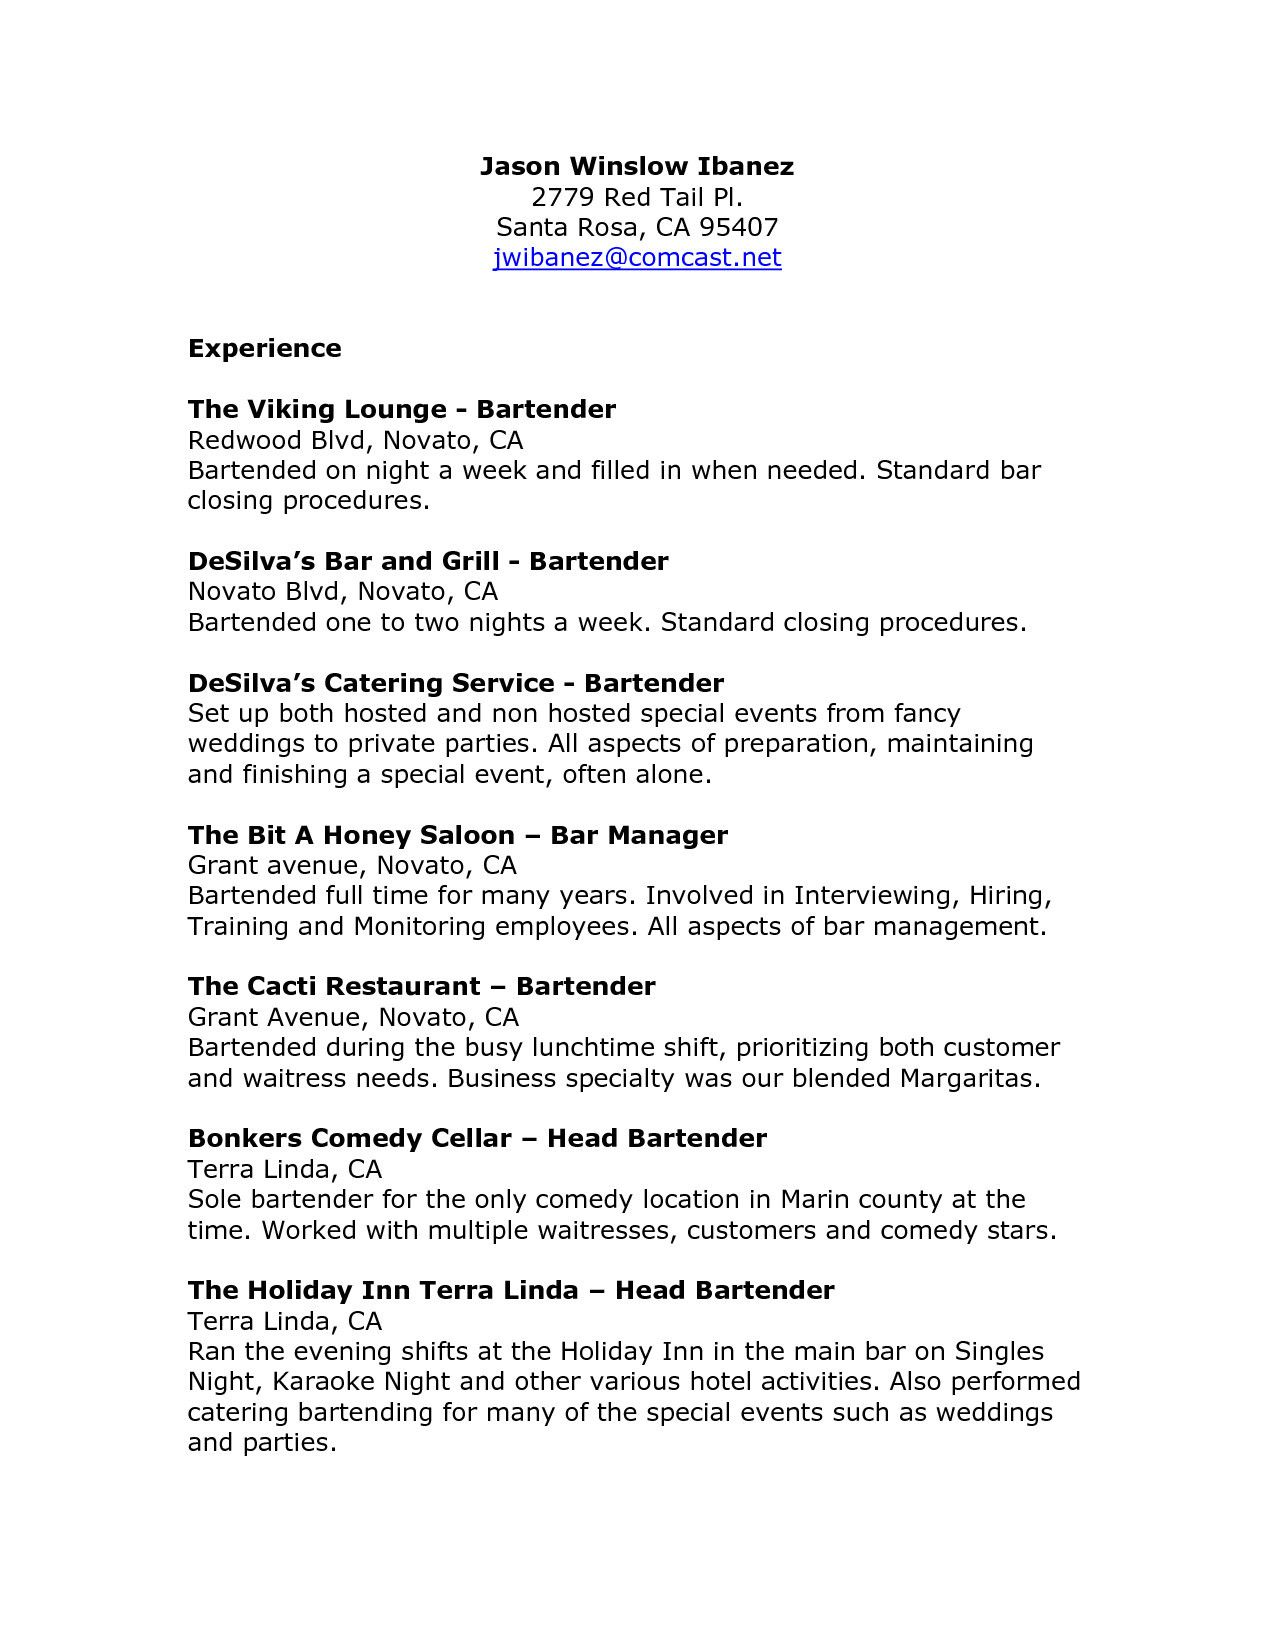 Staff Adjuster Cover Letter 27 Cover Letter For Bartender Cover Letter For Bartender Cover